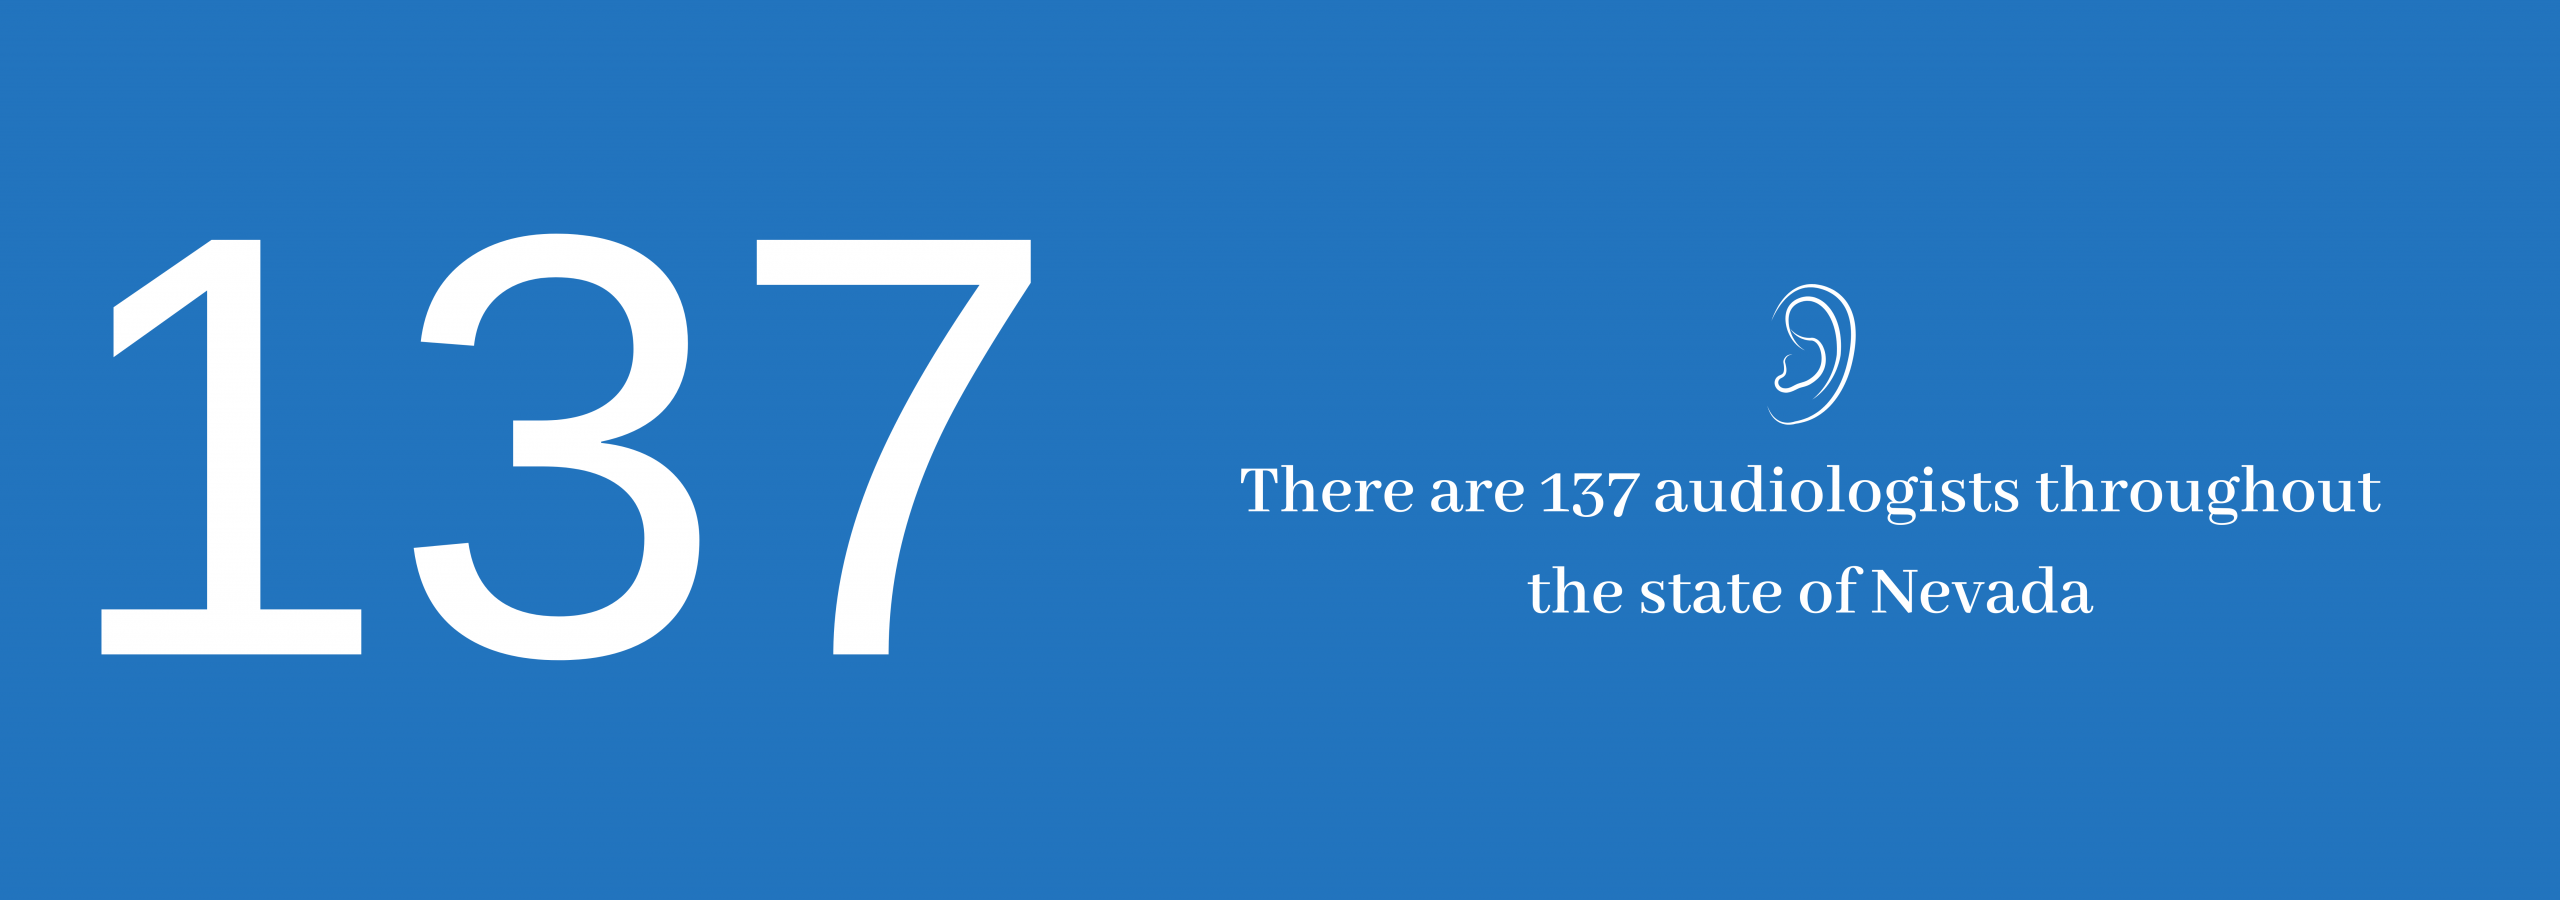 137 audiologists in the state of Nevada